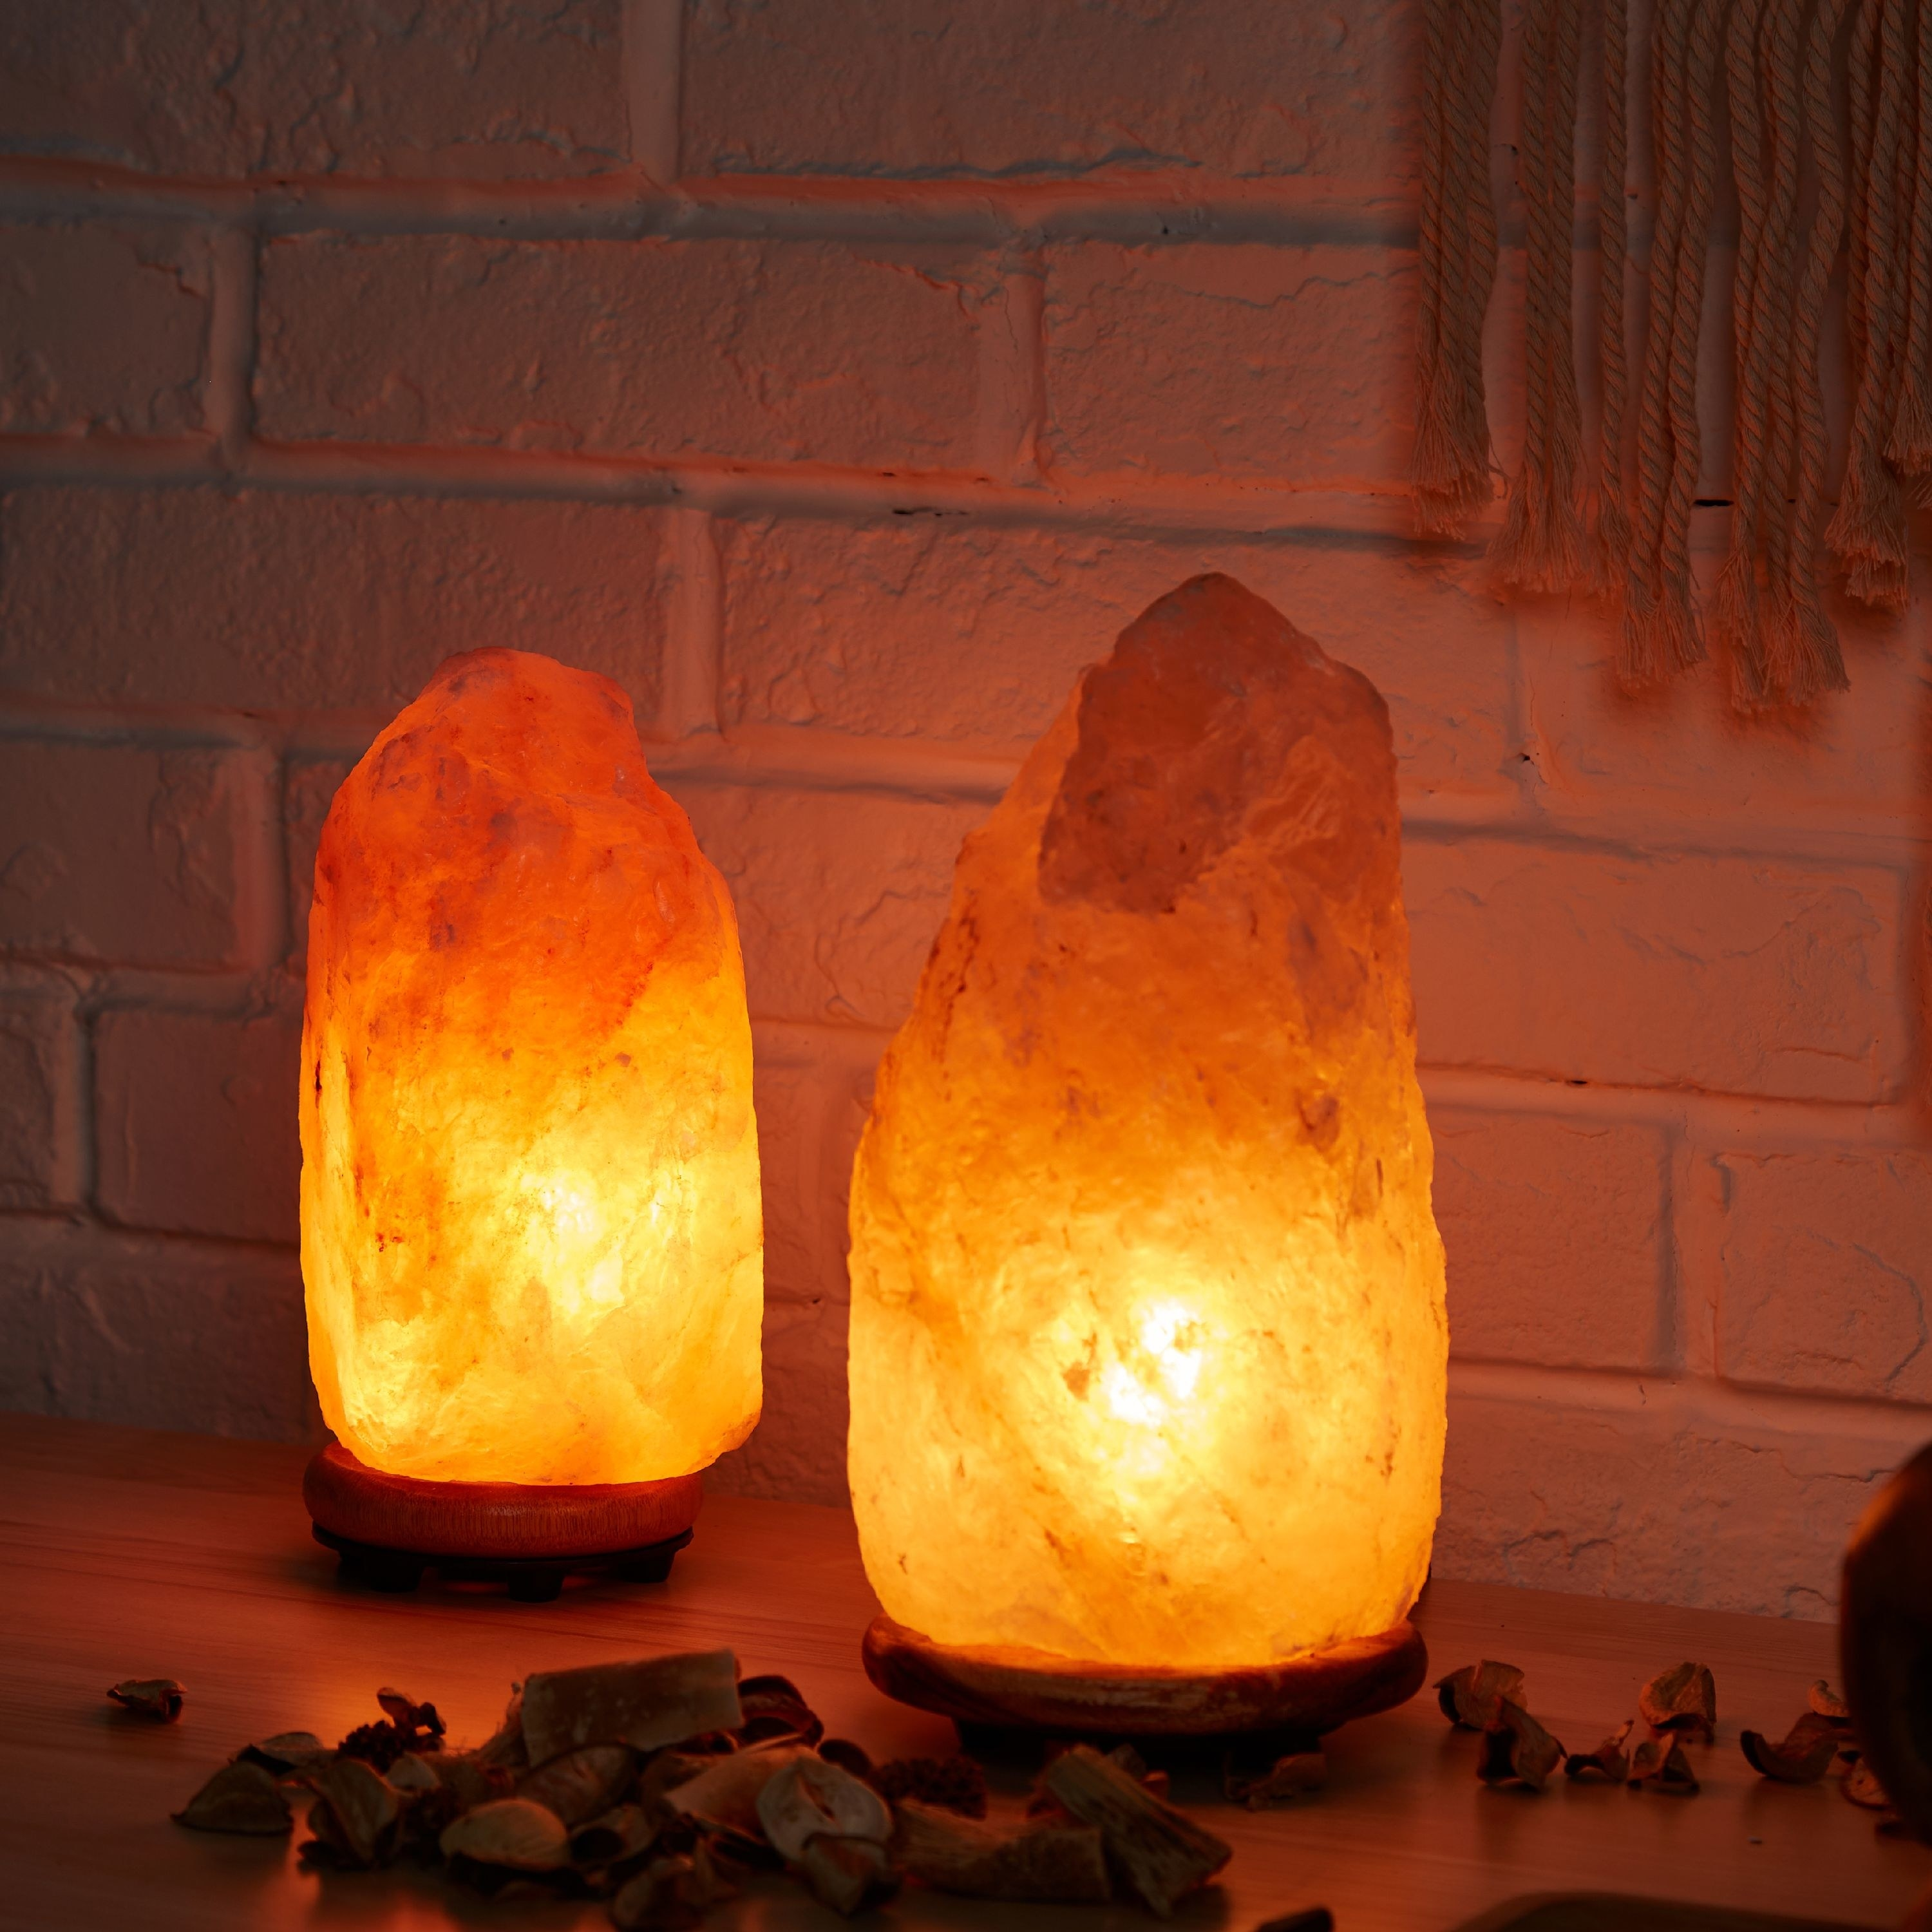 two Himalayan pink salt lamps lit in a dark room